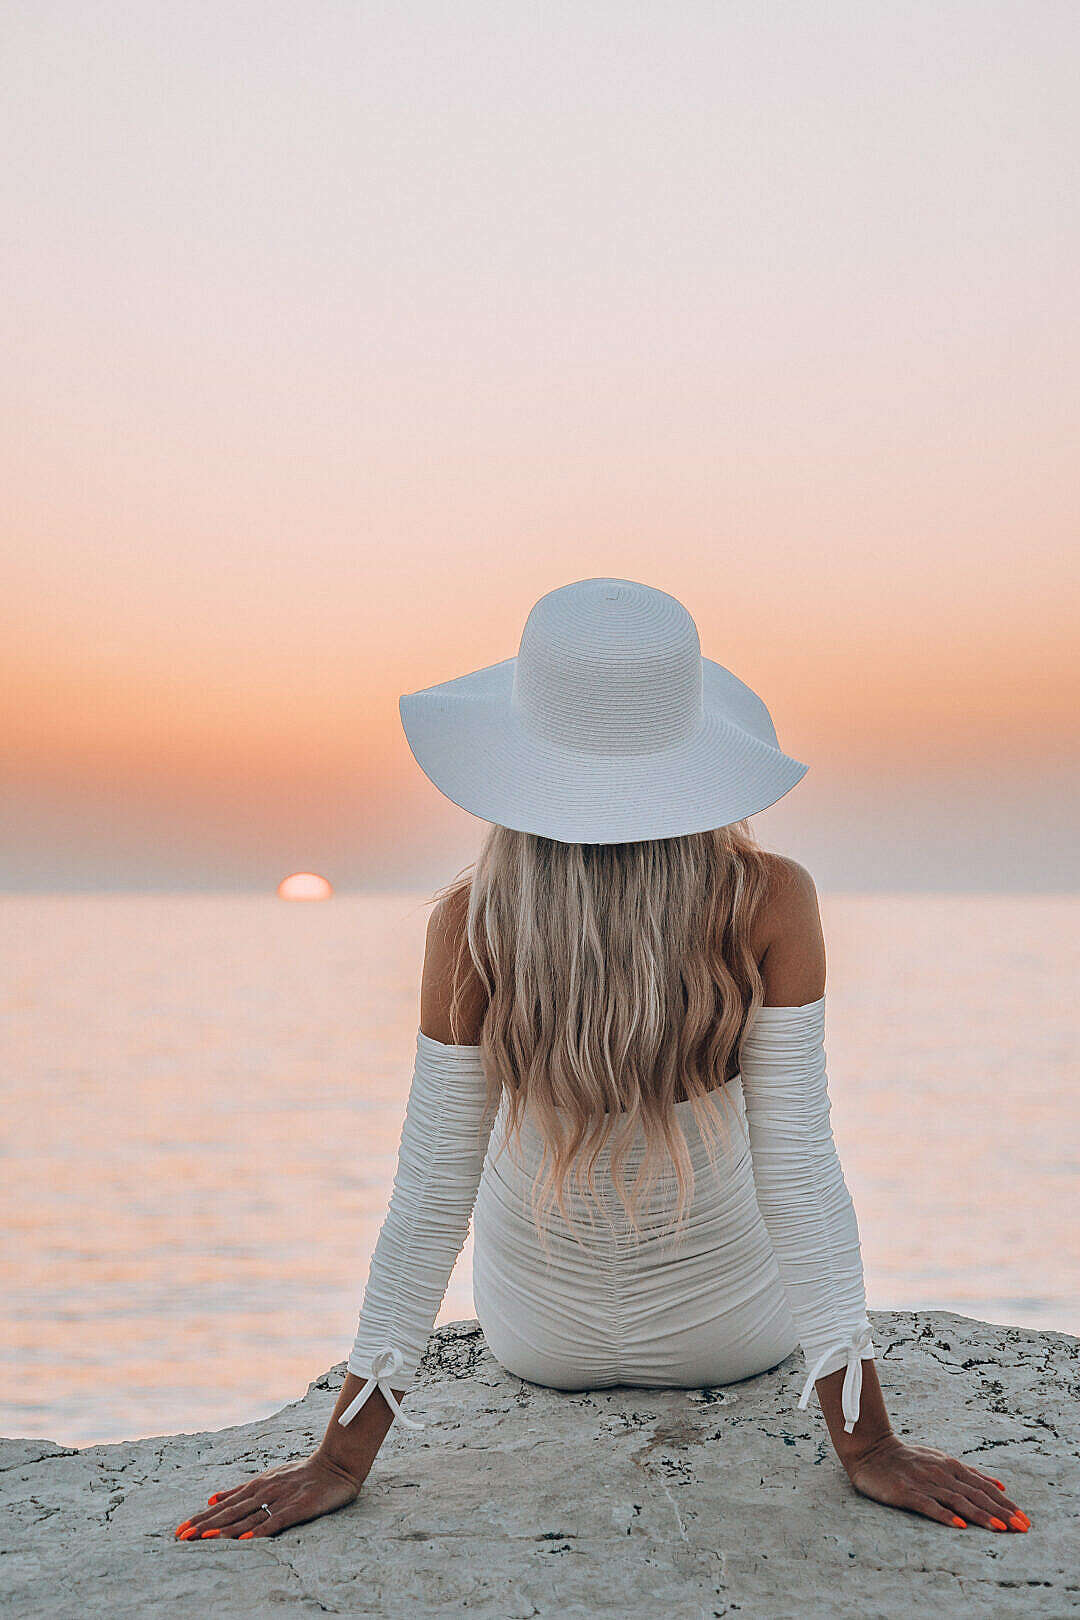 Download Beautiful Woman in White Hat Sitting on a Rock and Enjoying Sea Sunset FREE Stock Photo